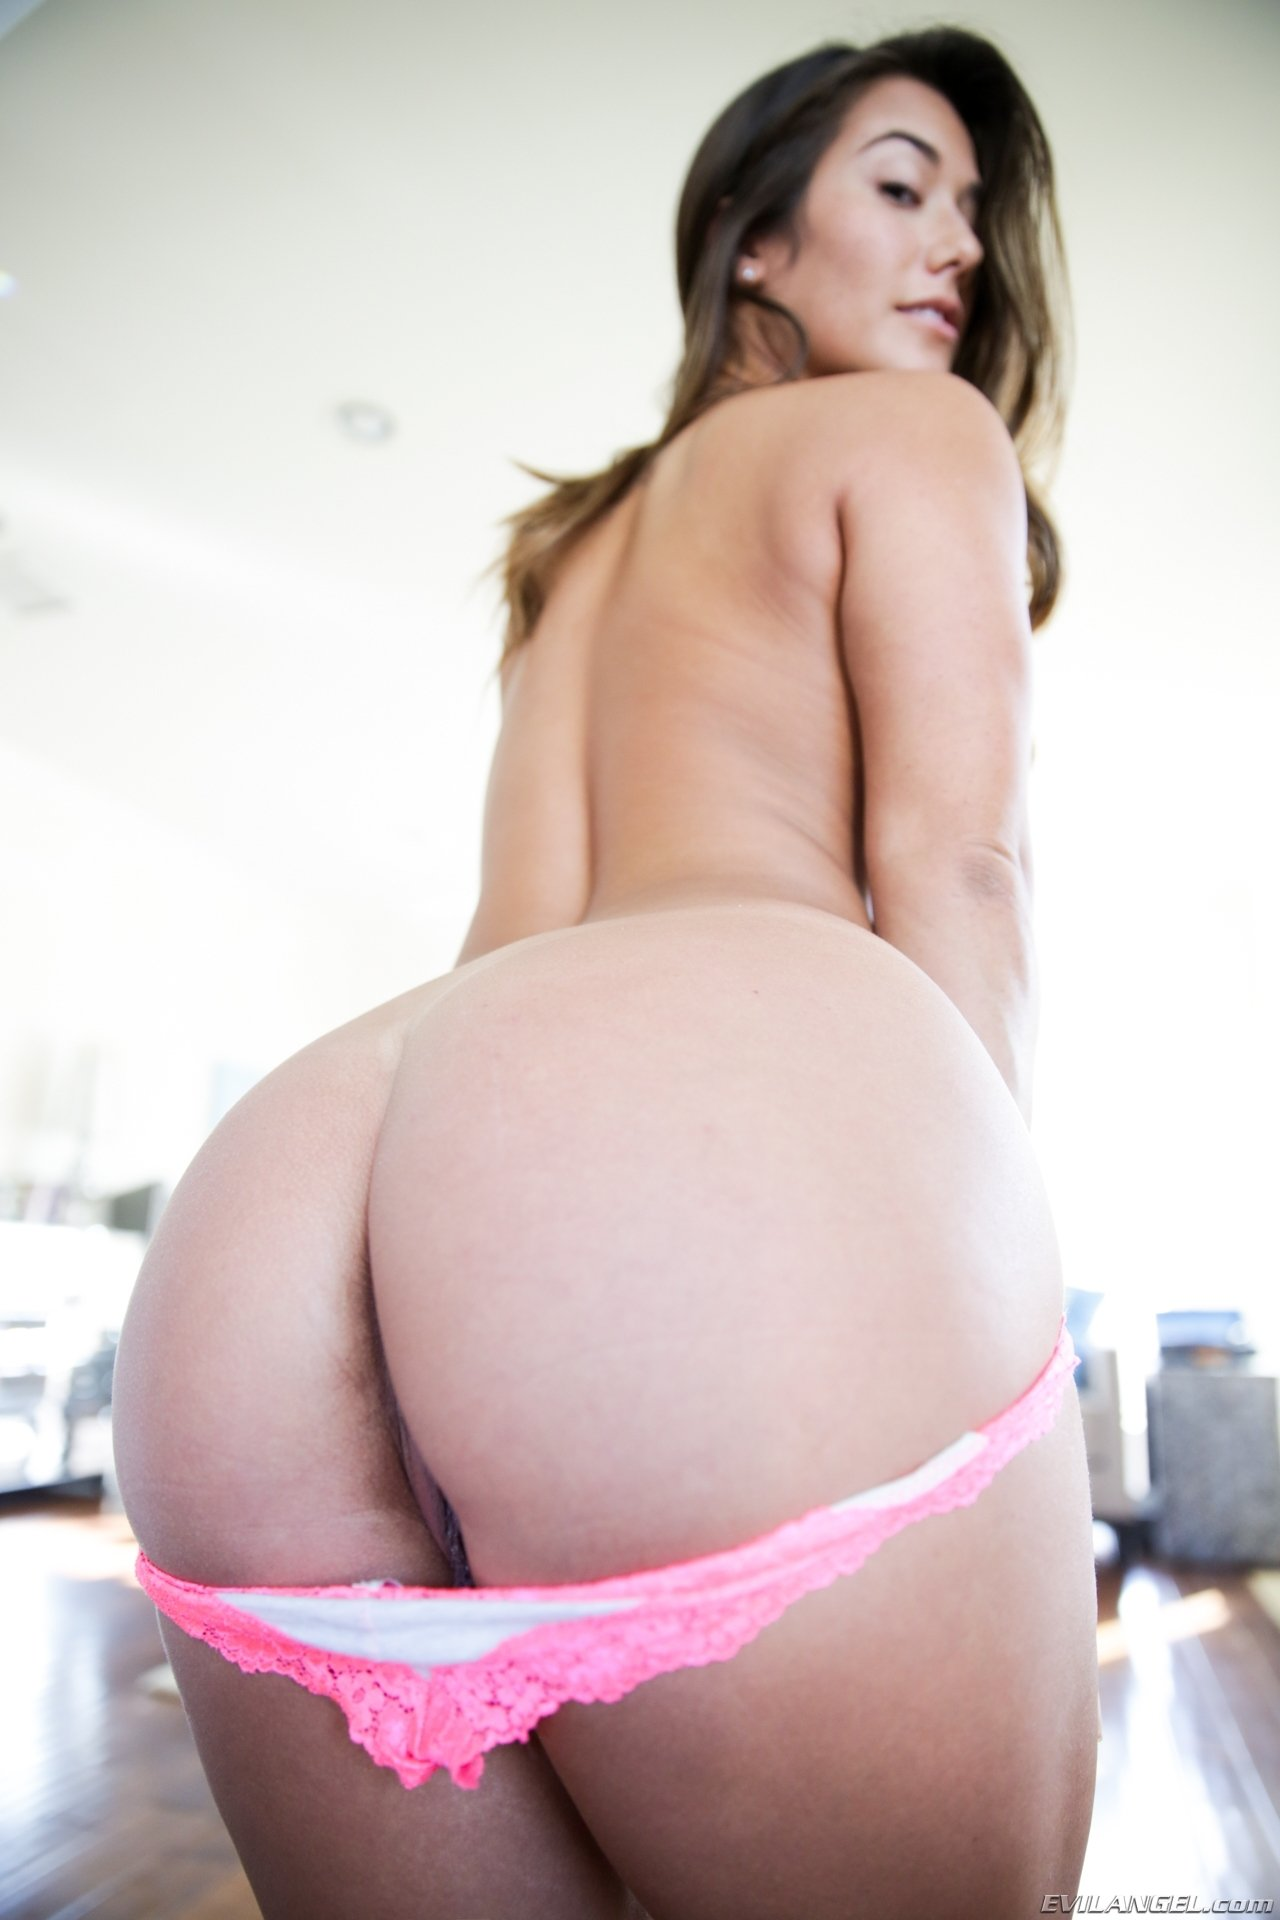 Hot wife vacation brianna love bukkake